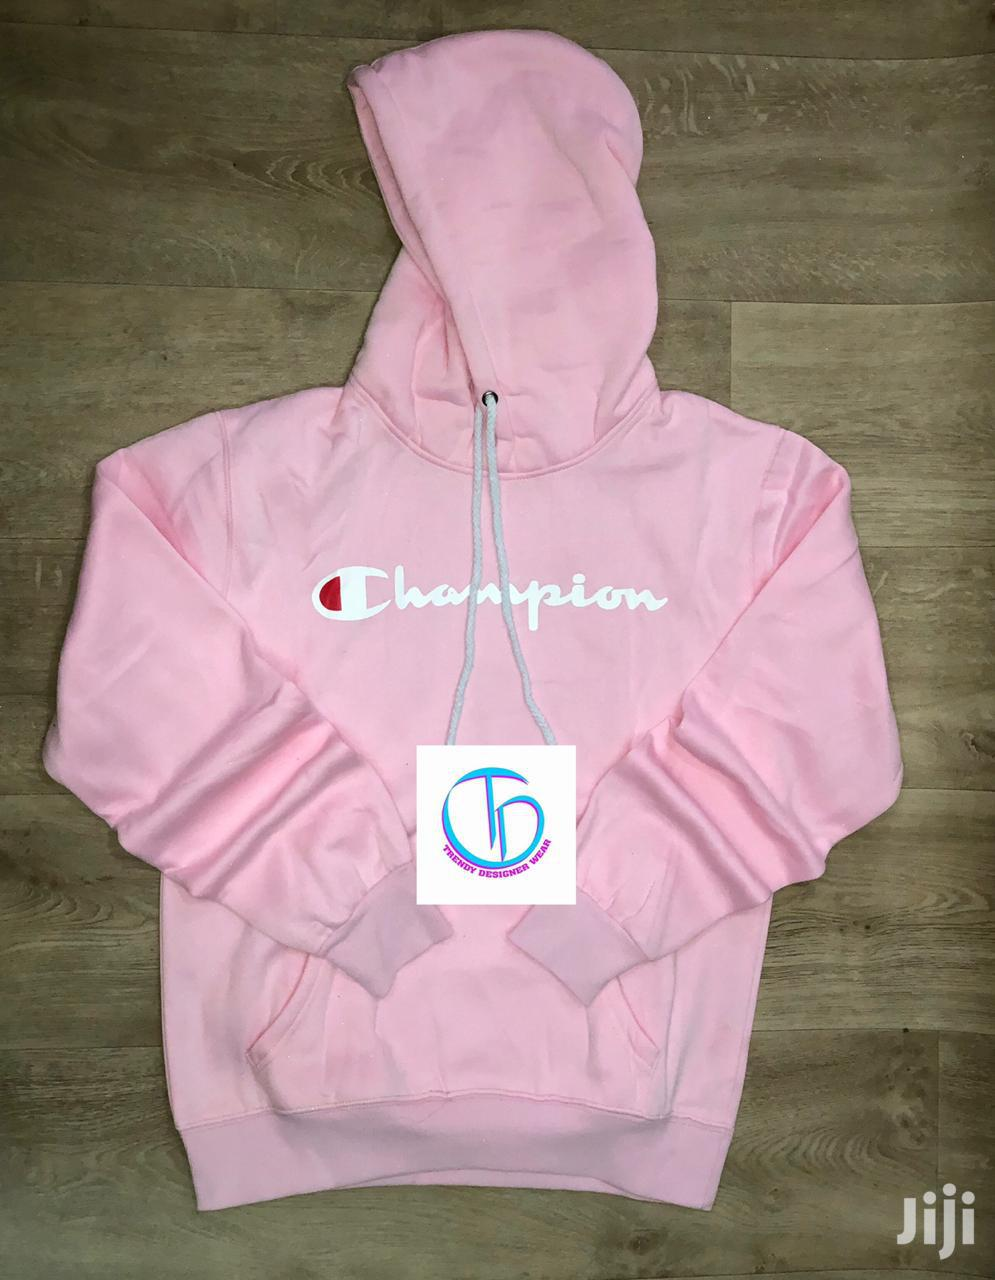 Designer Hoodies Available